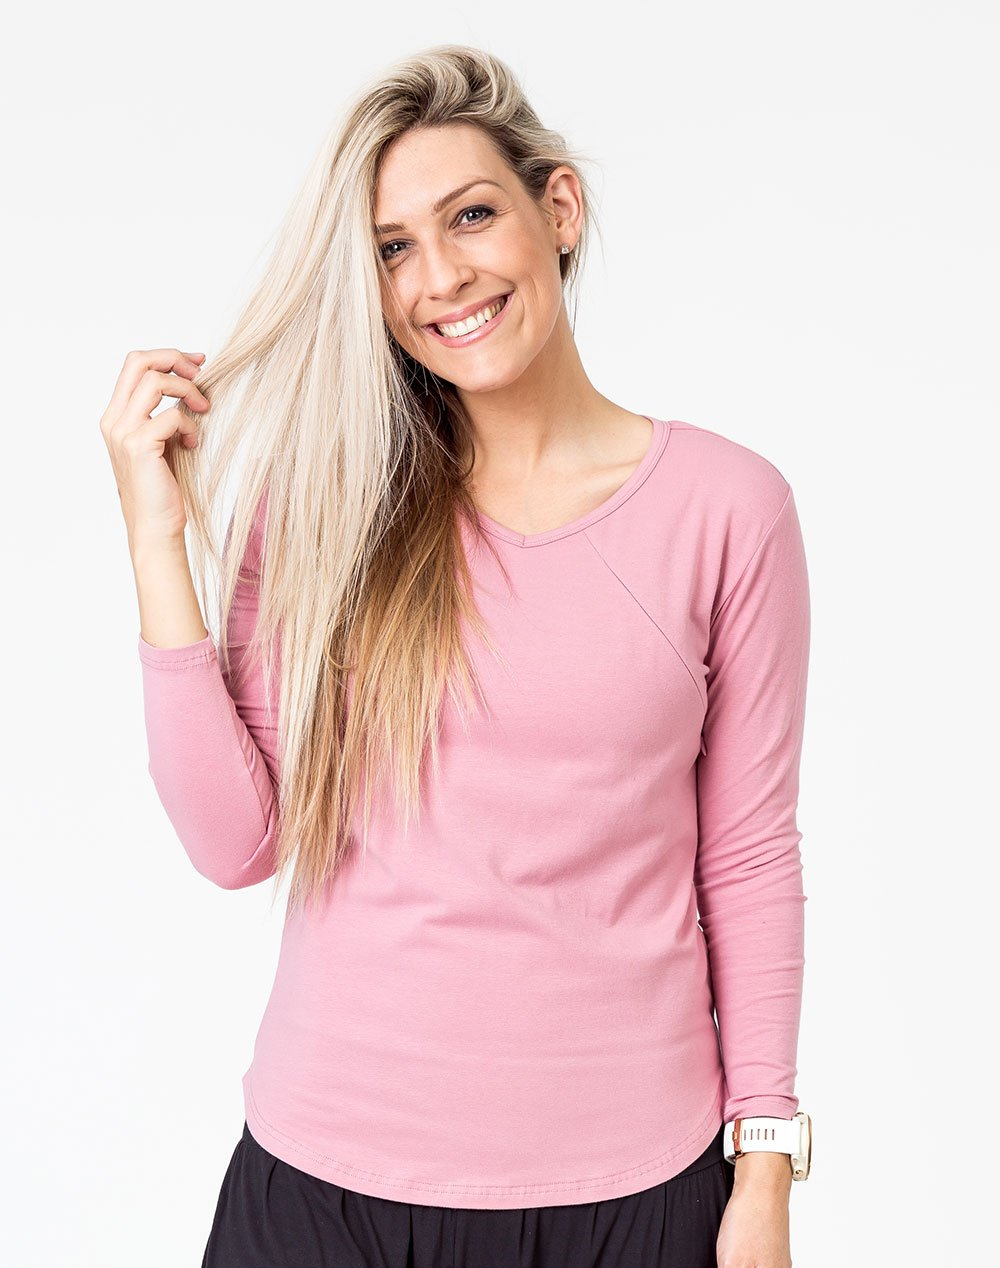 Maternity Top - Cruise Long Sleeve Rose Pink